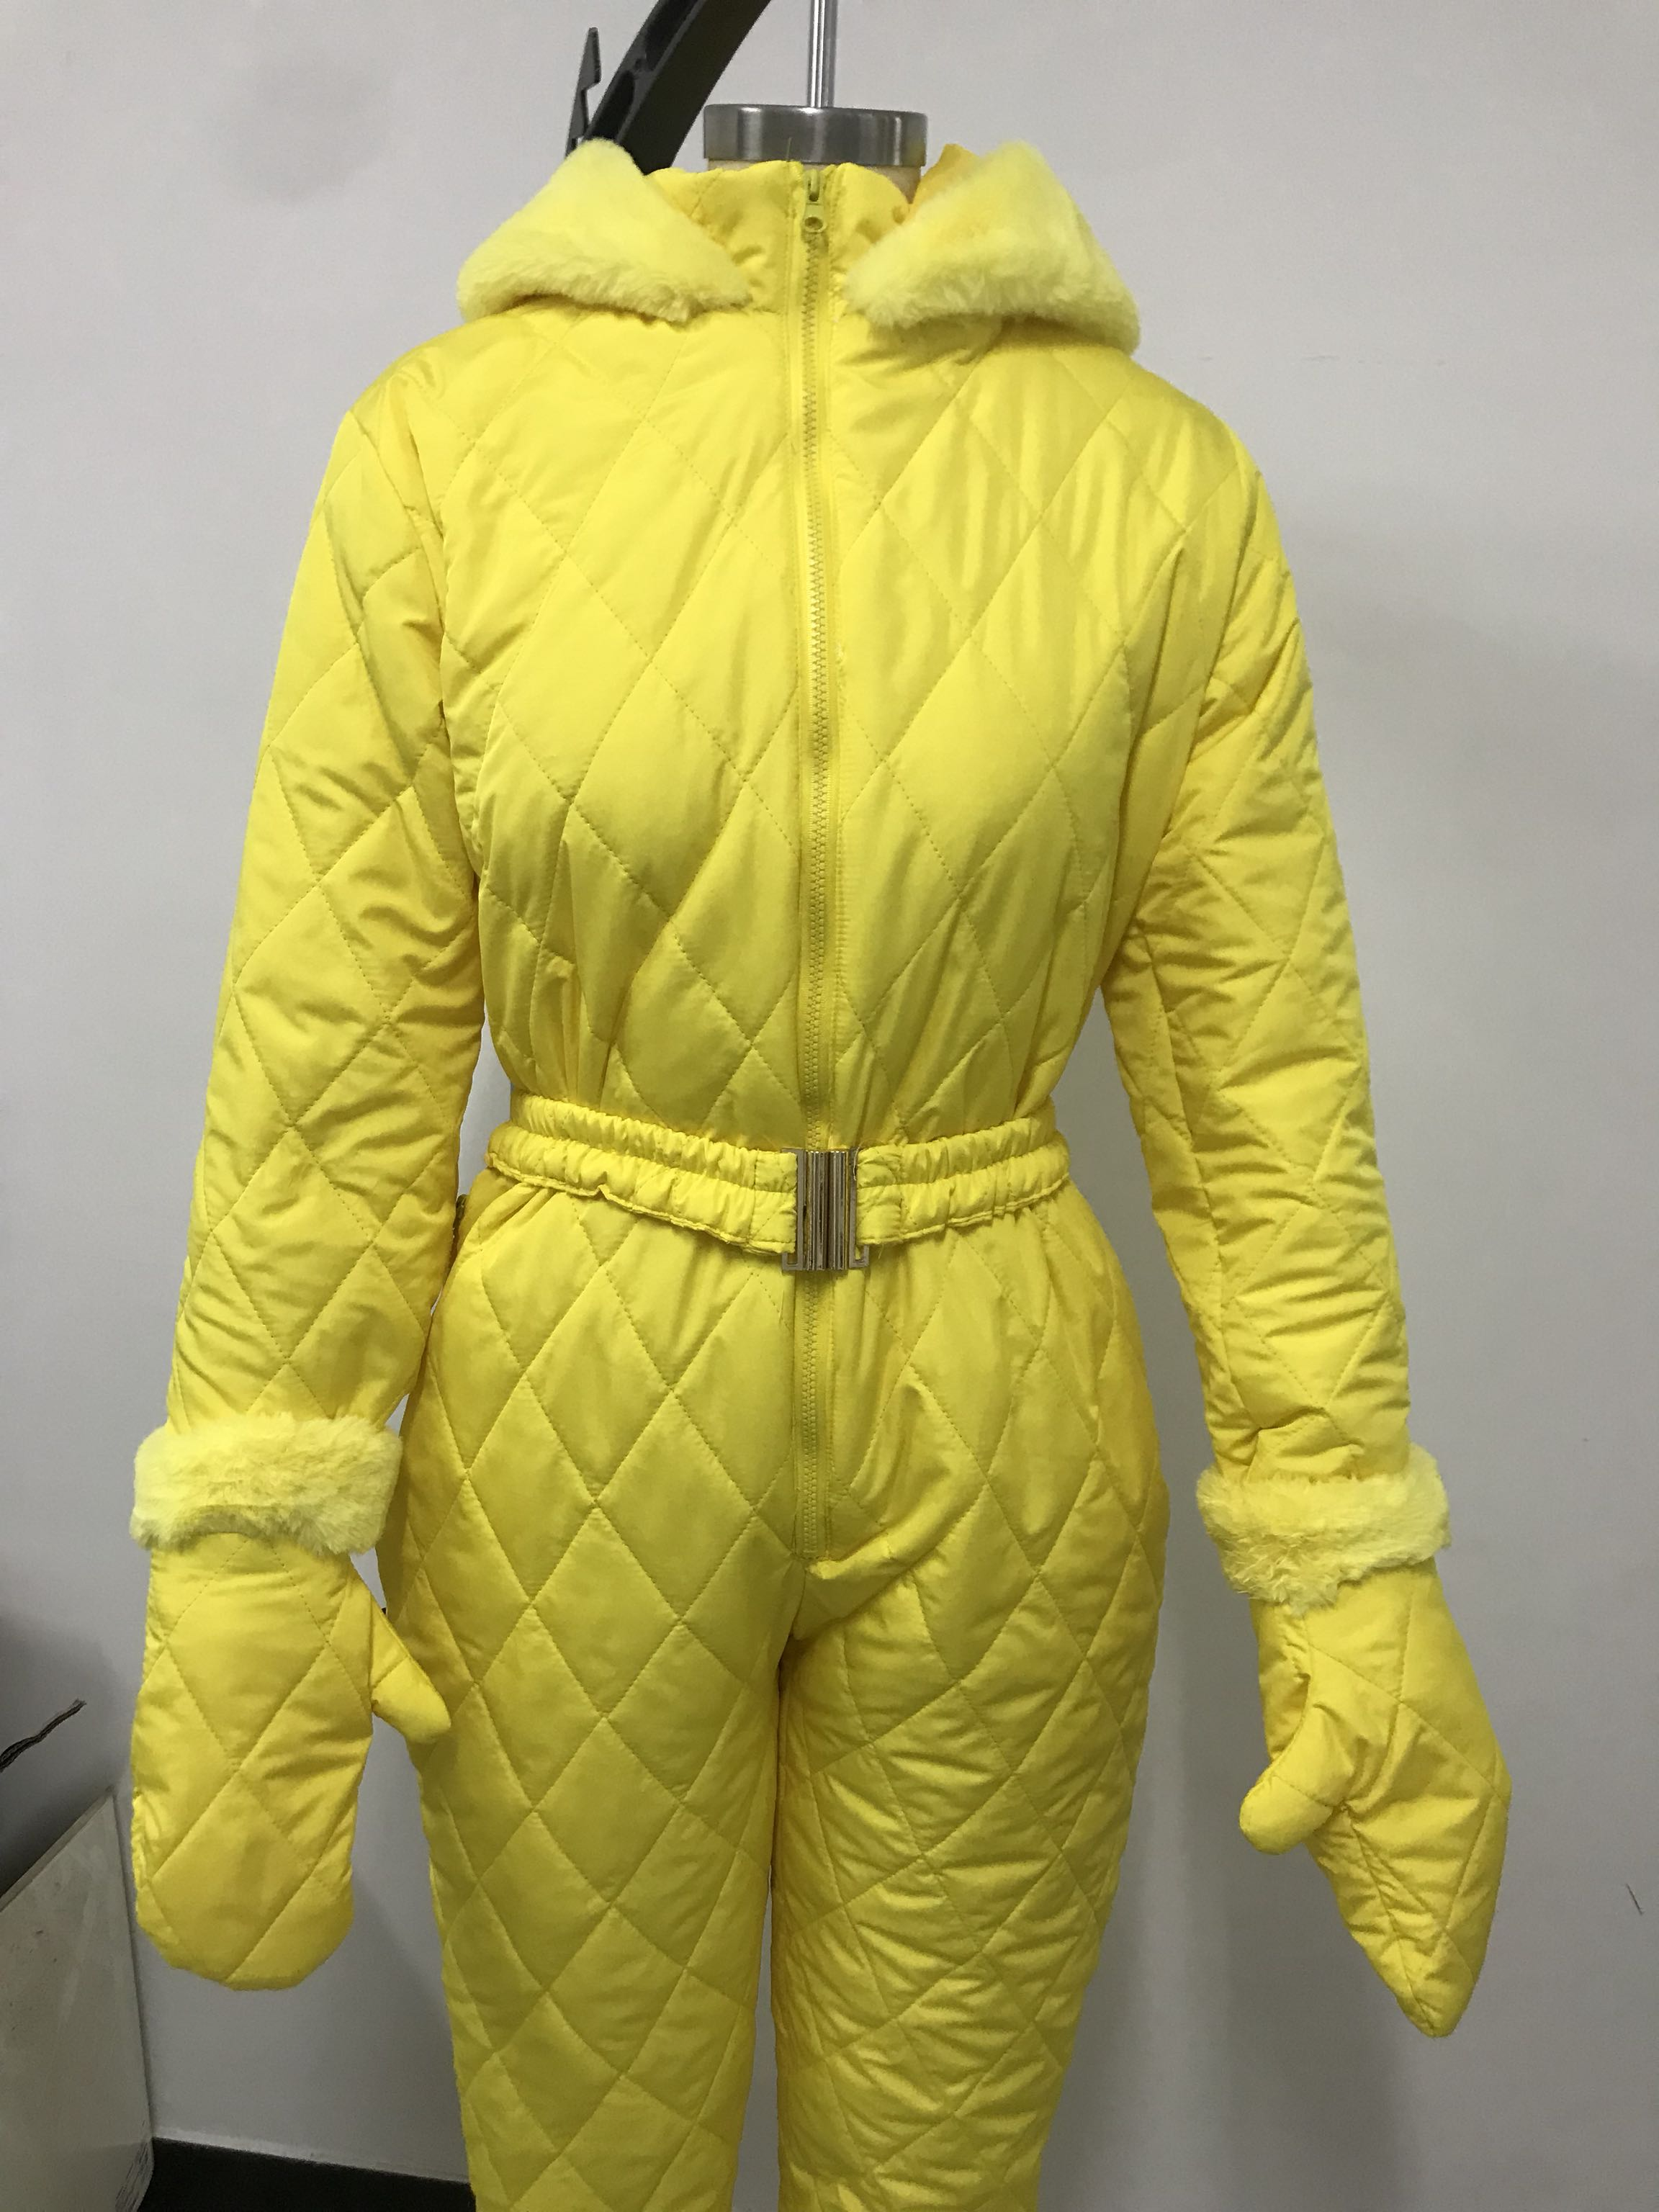 Women Winter Thick Warm Snowsuit Sports Pants Ski Suit Waterproof Windproof Jumpsuit Skiing Snow Costumes Outdoor Wear